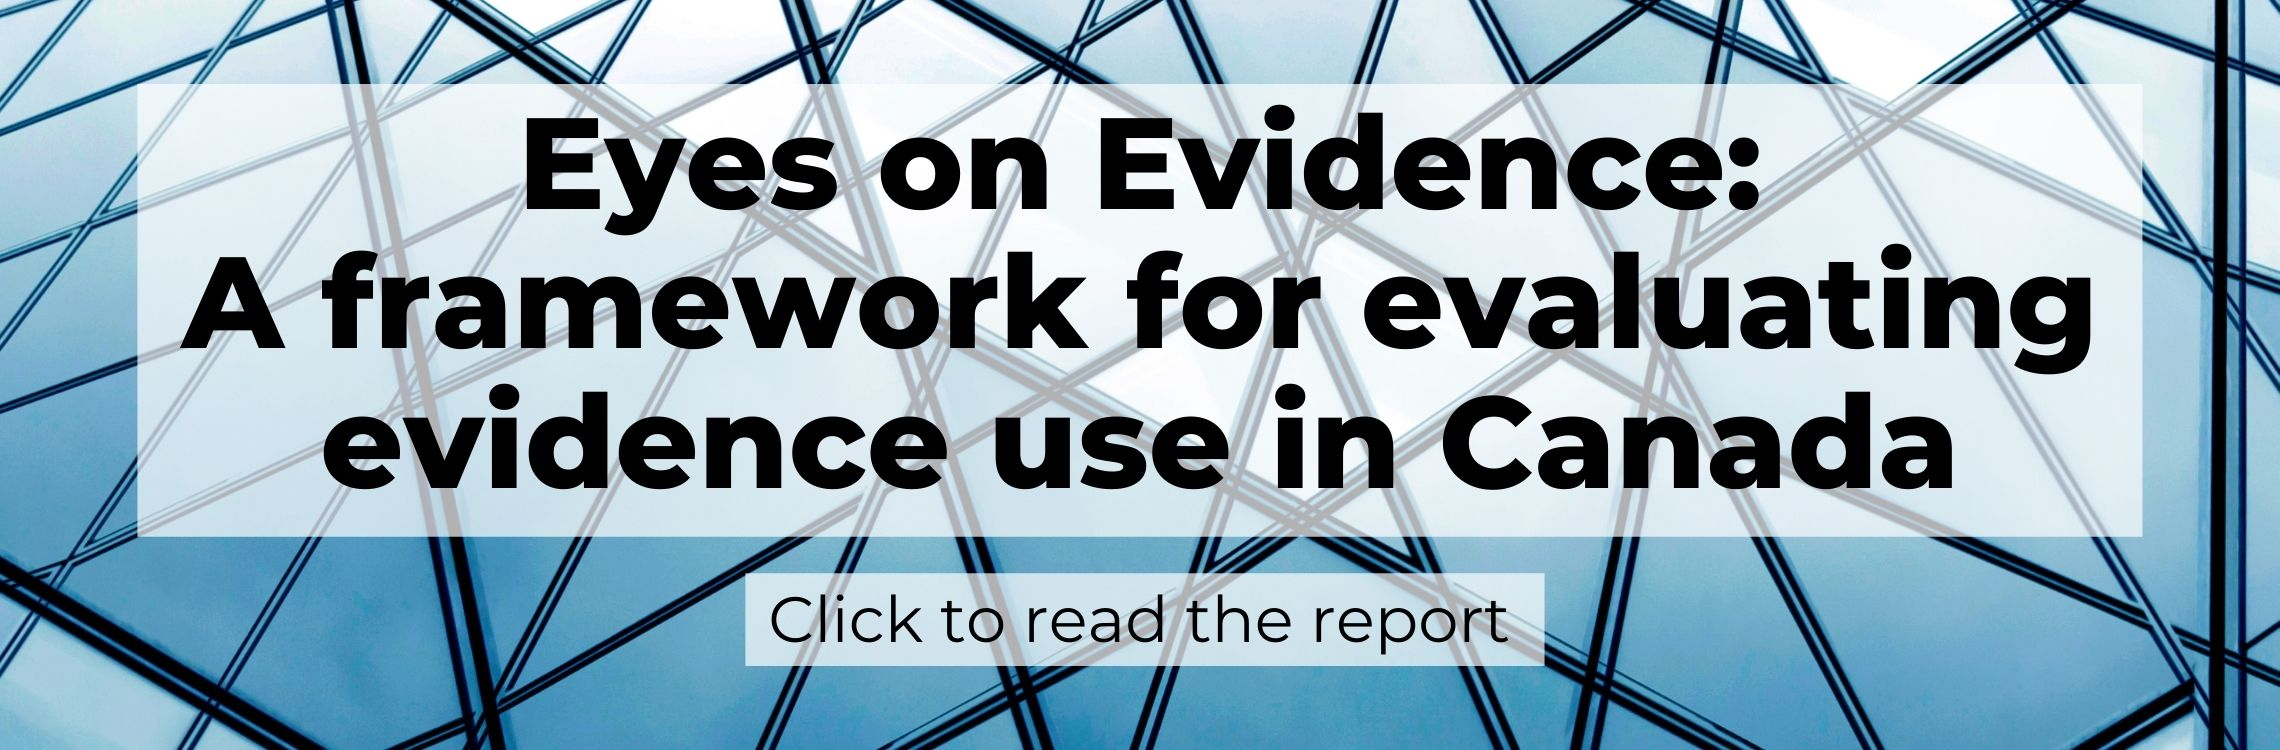 Eyes on Evidence: A framework for evaluating evidence use in Canada